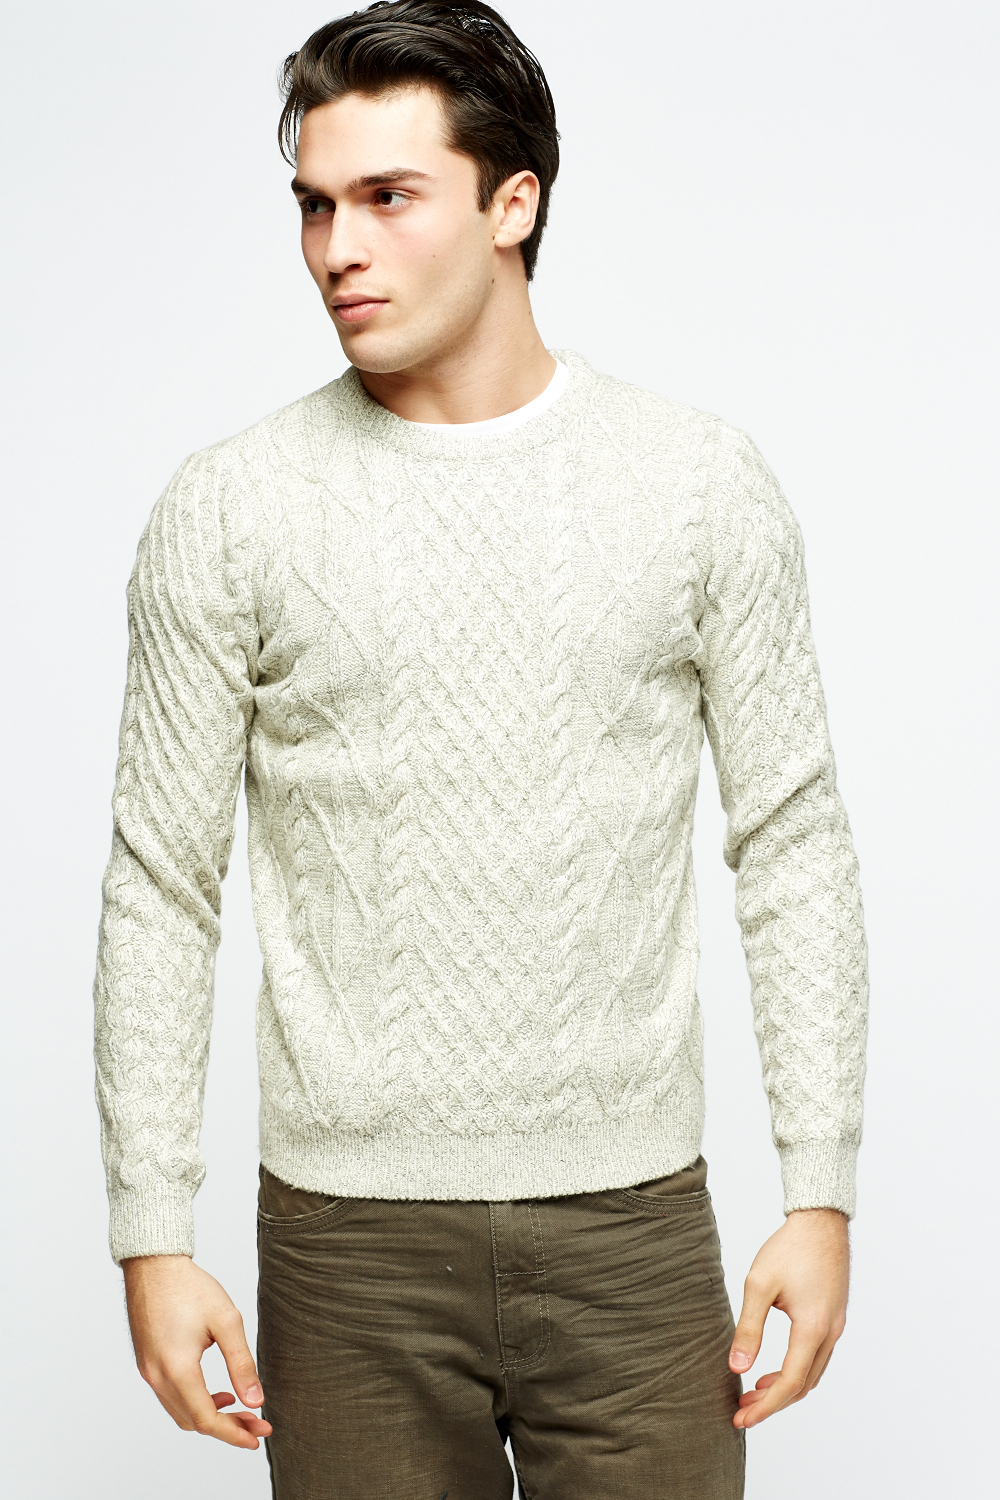 Free Knitting Patterns For Men's Sweaters 7 Free Knitting Patterns For Men Every Guy Will Love Interweave